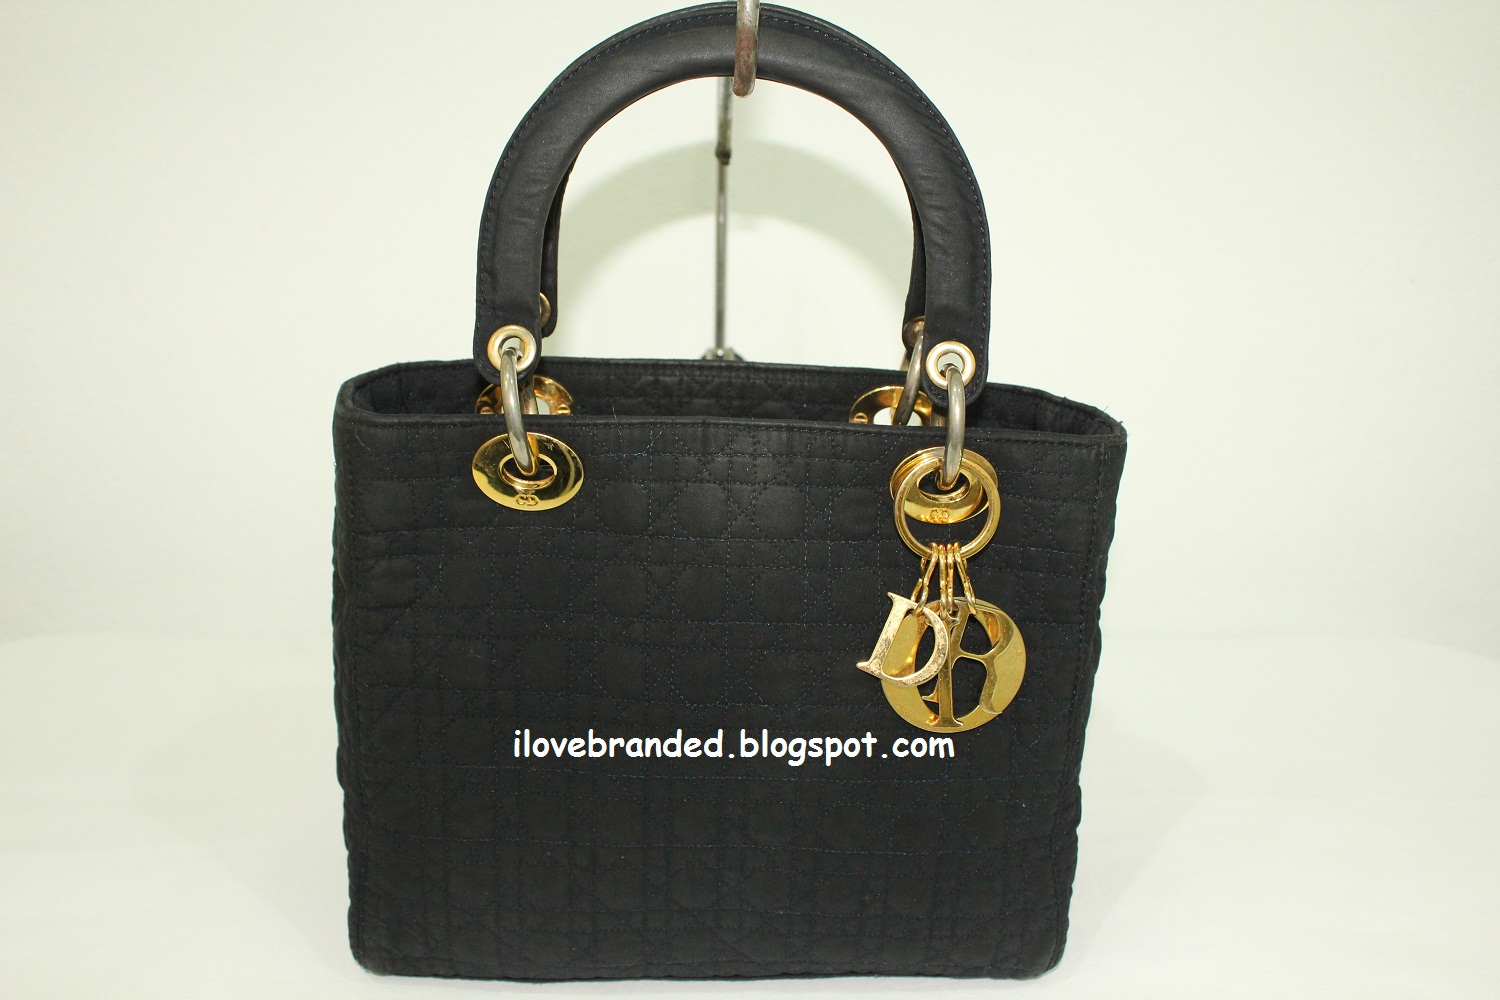 Christian Dior Lady Dior Tote Bag (SOLD)